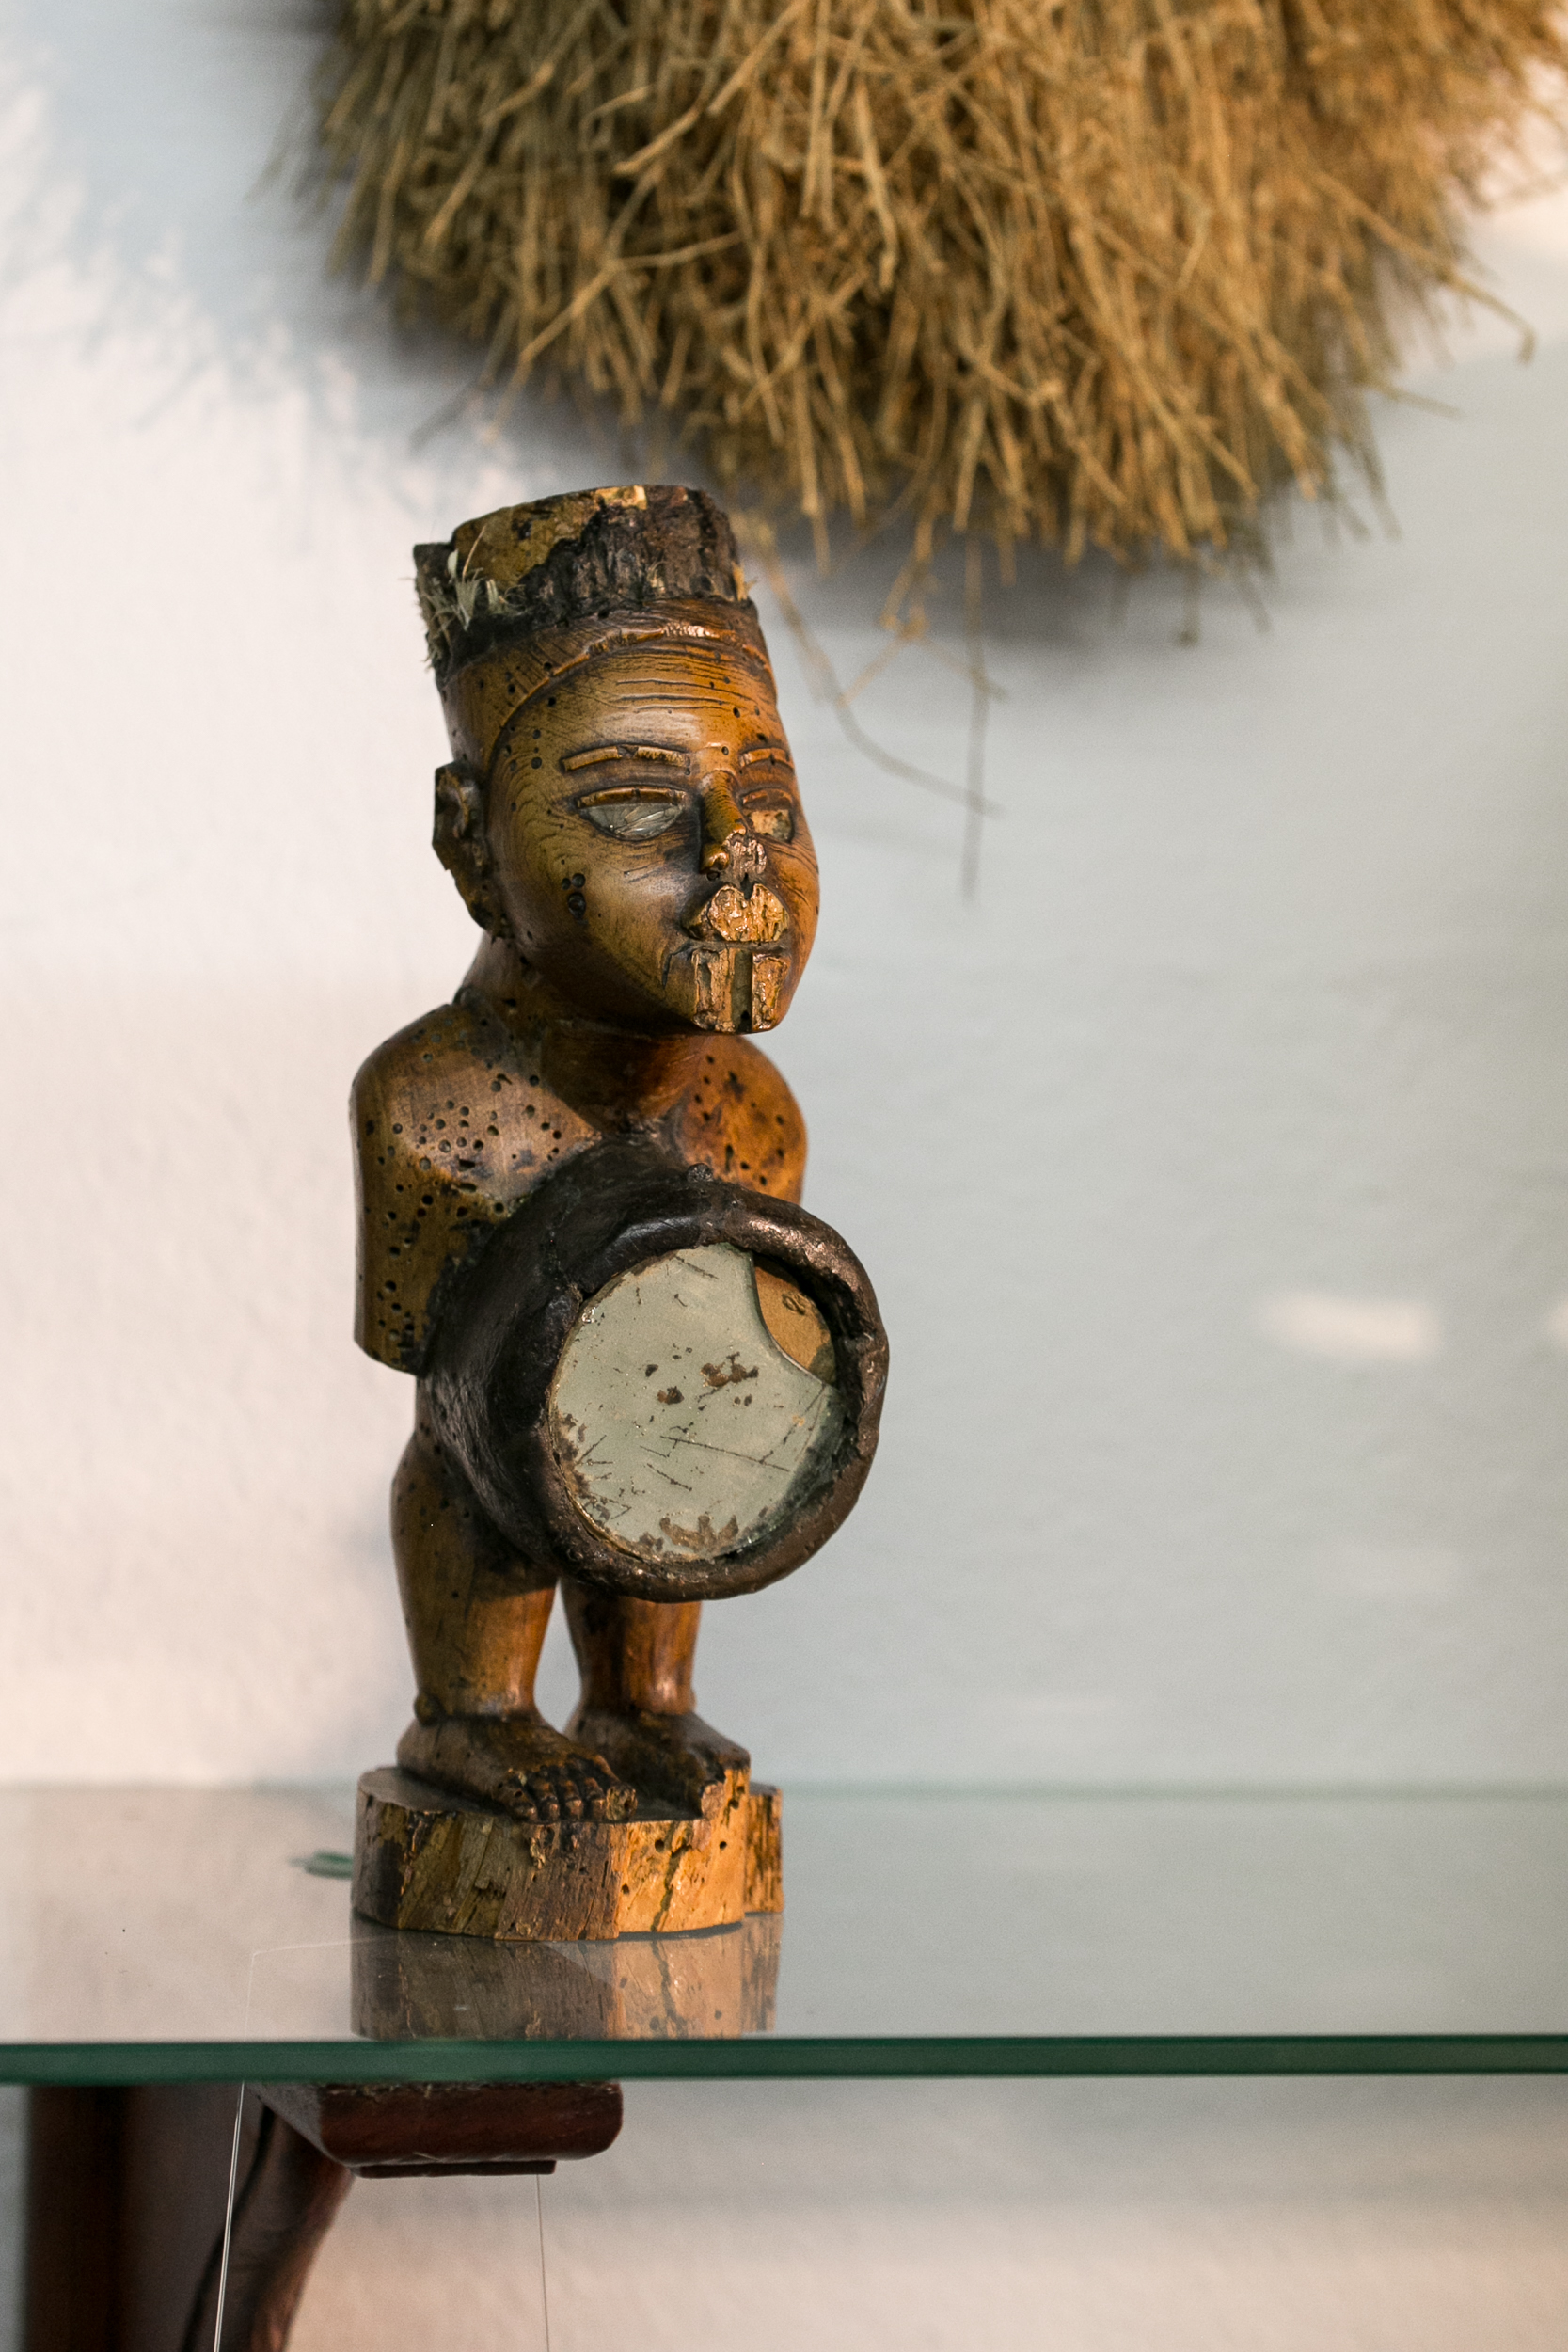 musee-africain-namur-belgique-art-africain-galerie-lz-arts-collection-masques-statues-congo-4.jpg